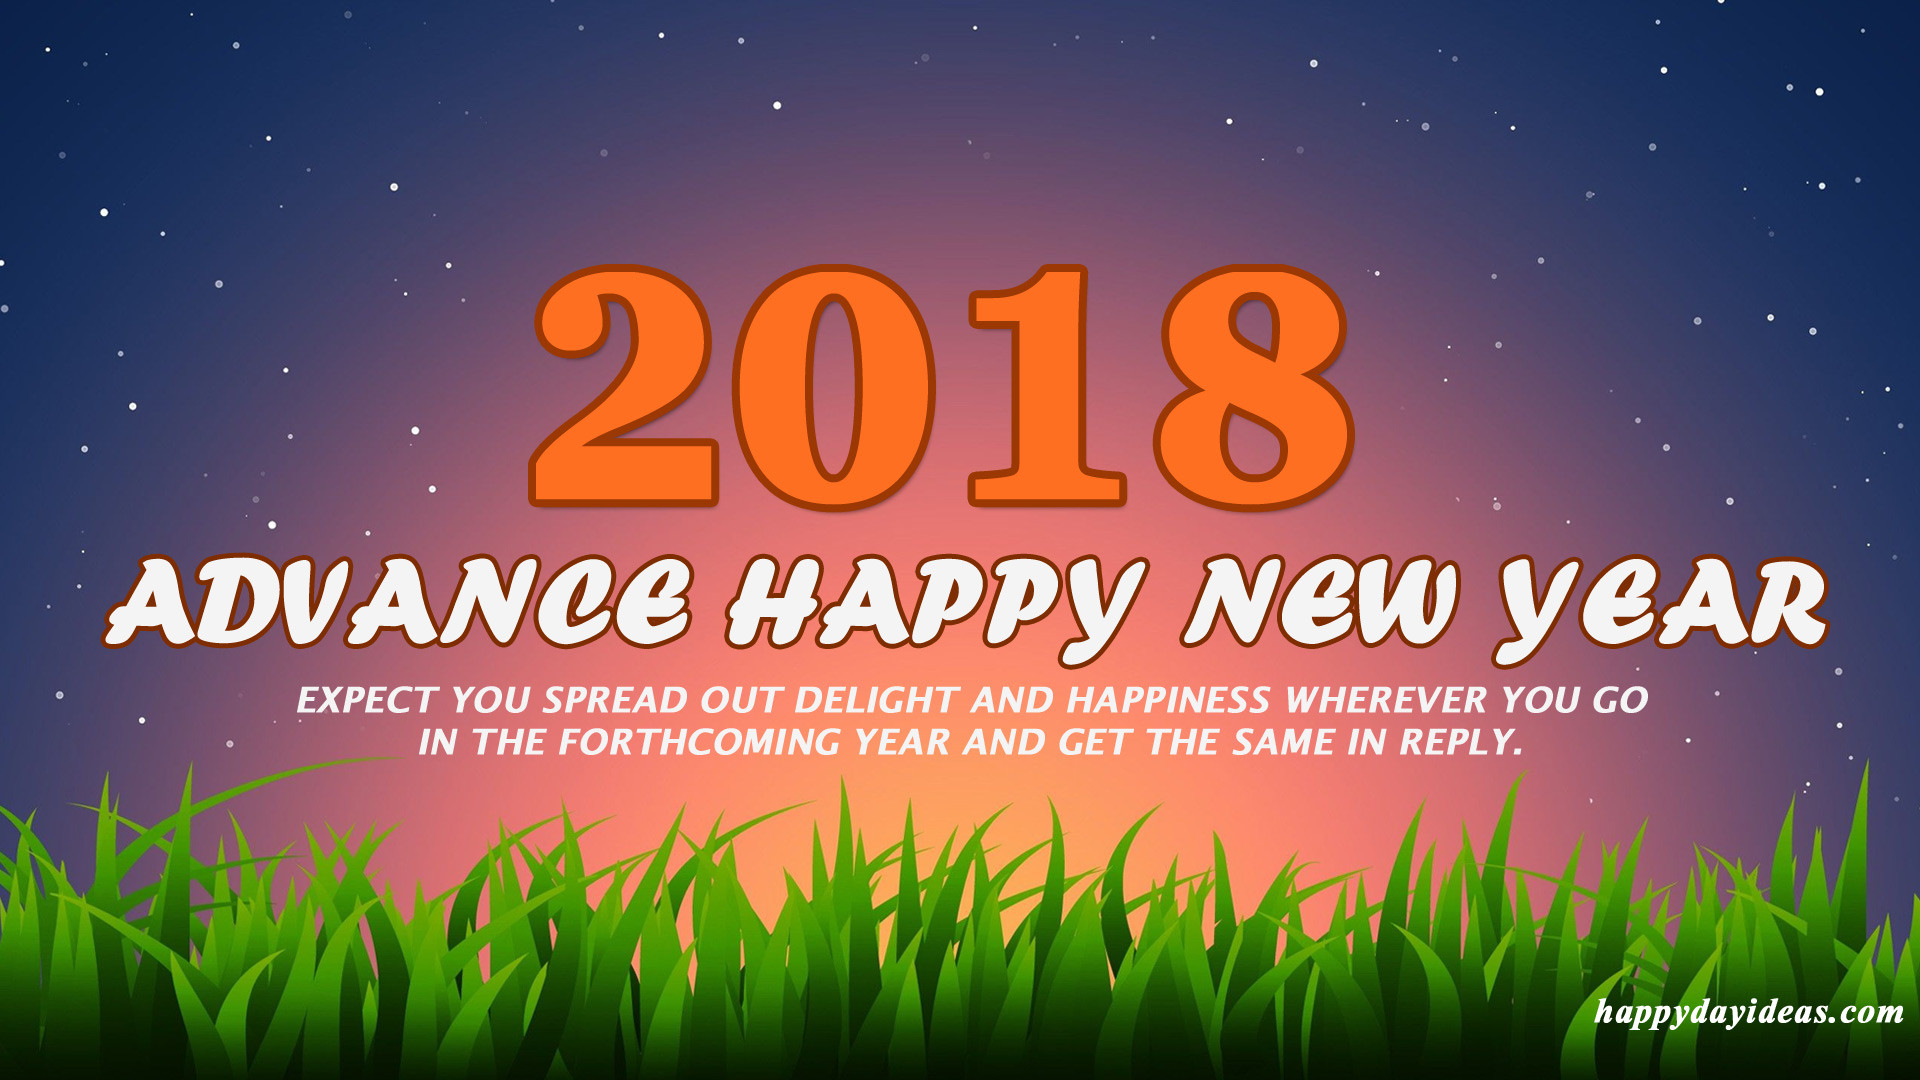 Happy New Year Love Wallpapers 2018 69 Background Pictures